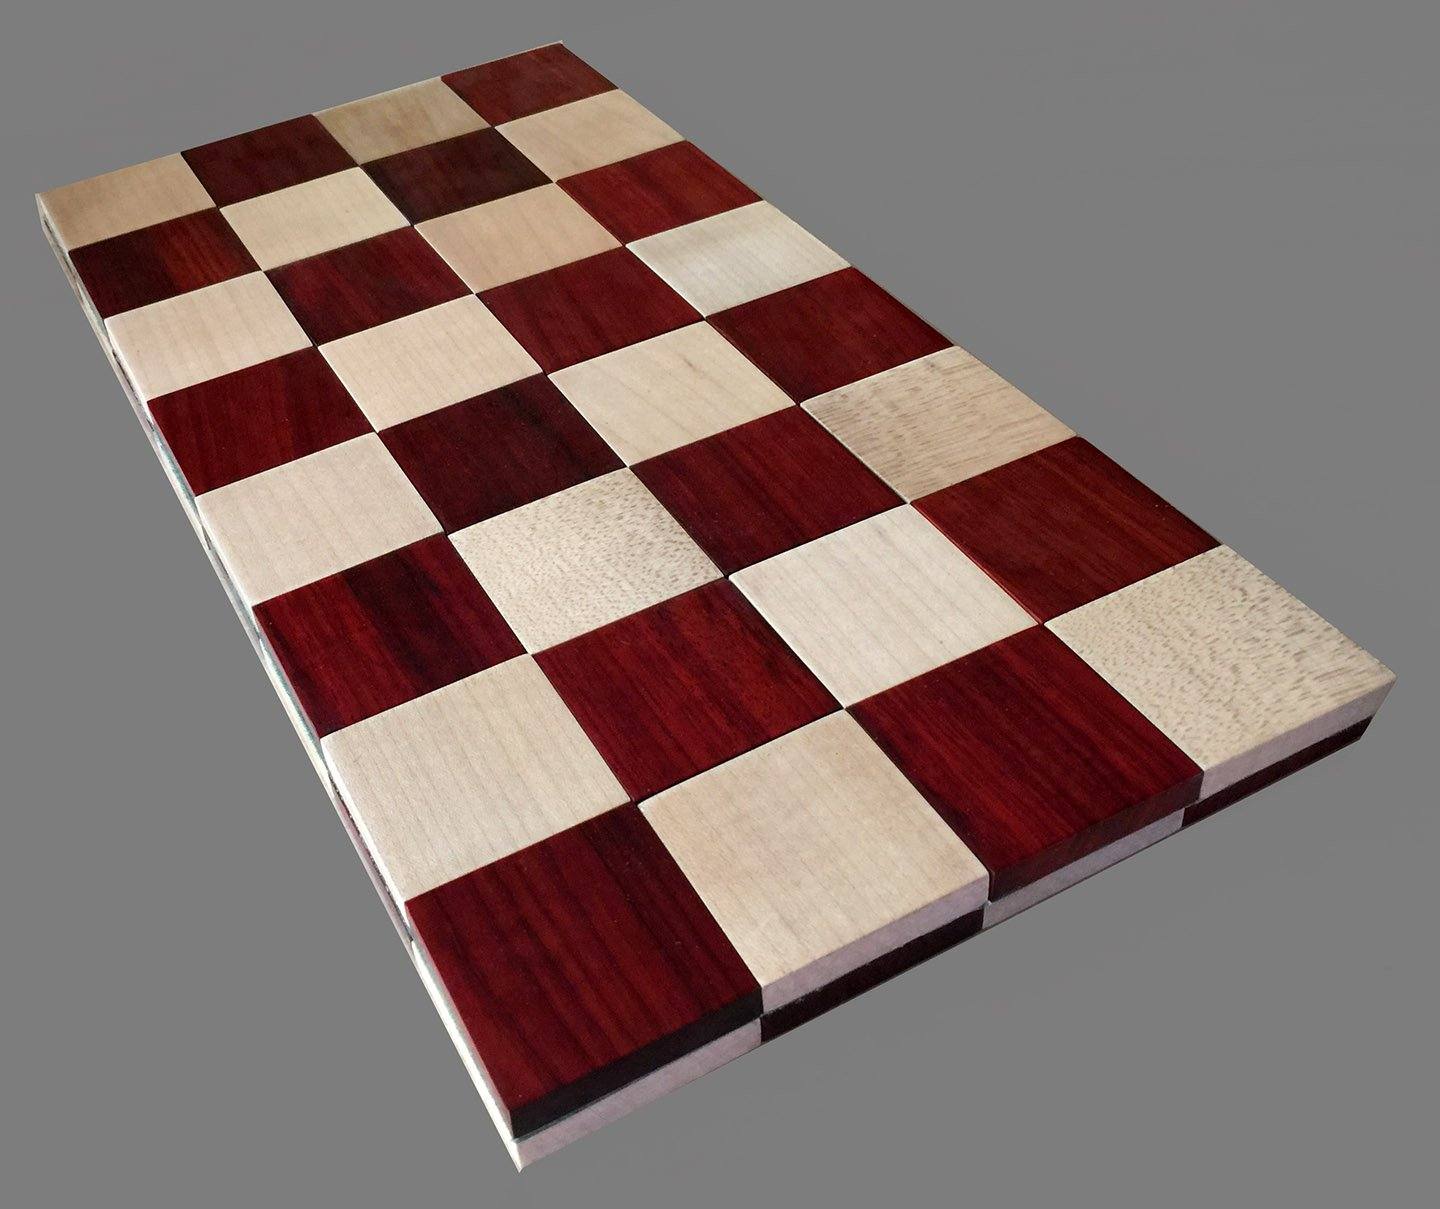 Roll Up Folding Wooden Chessboard